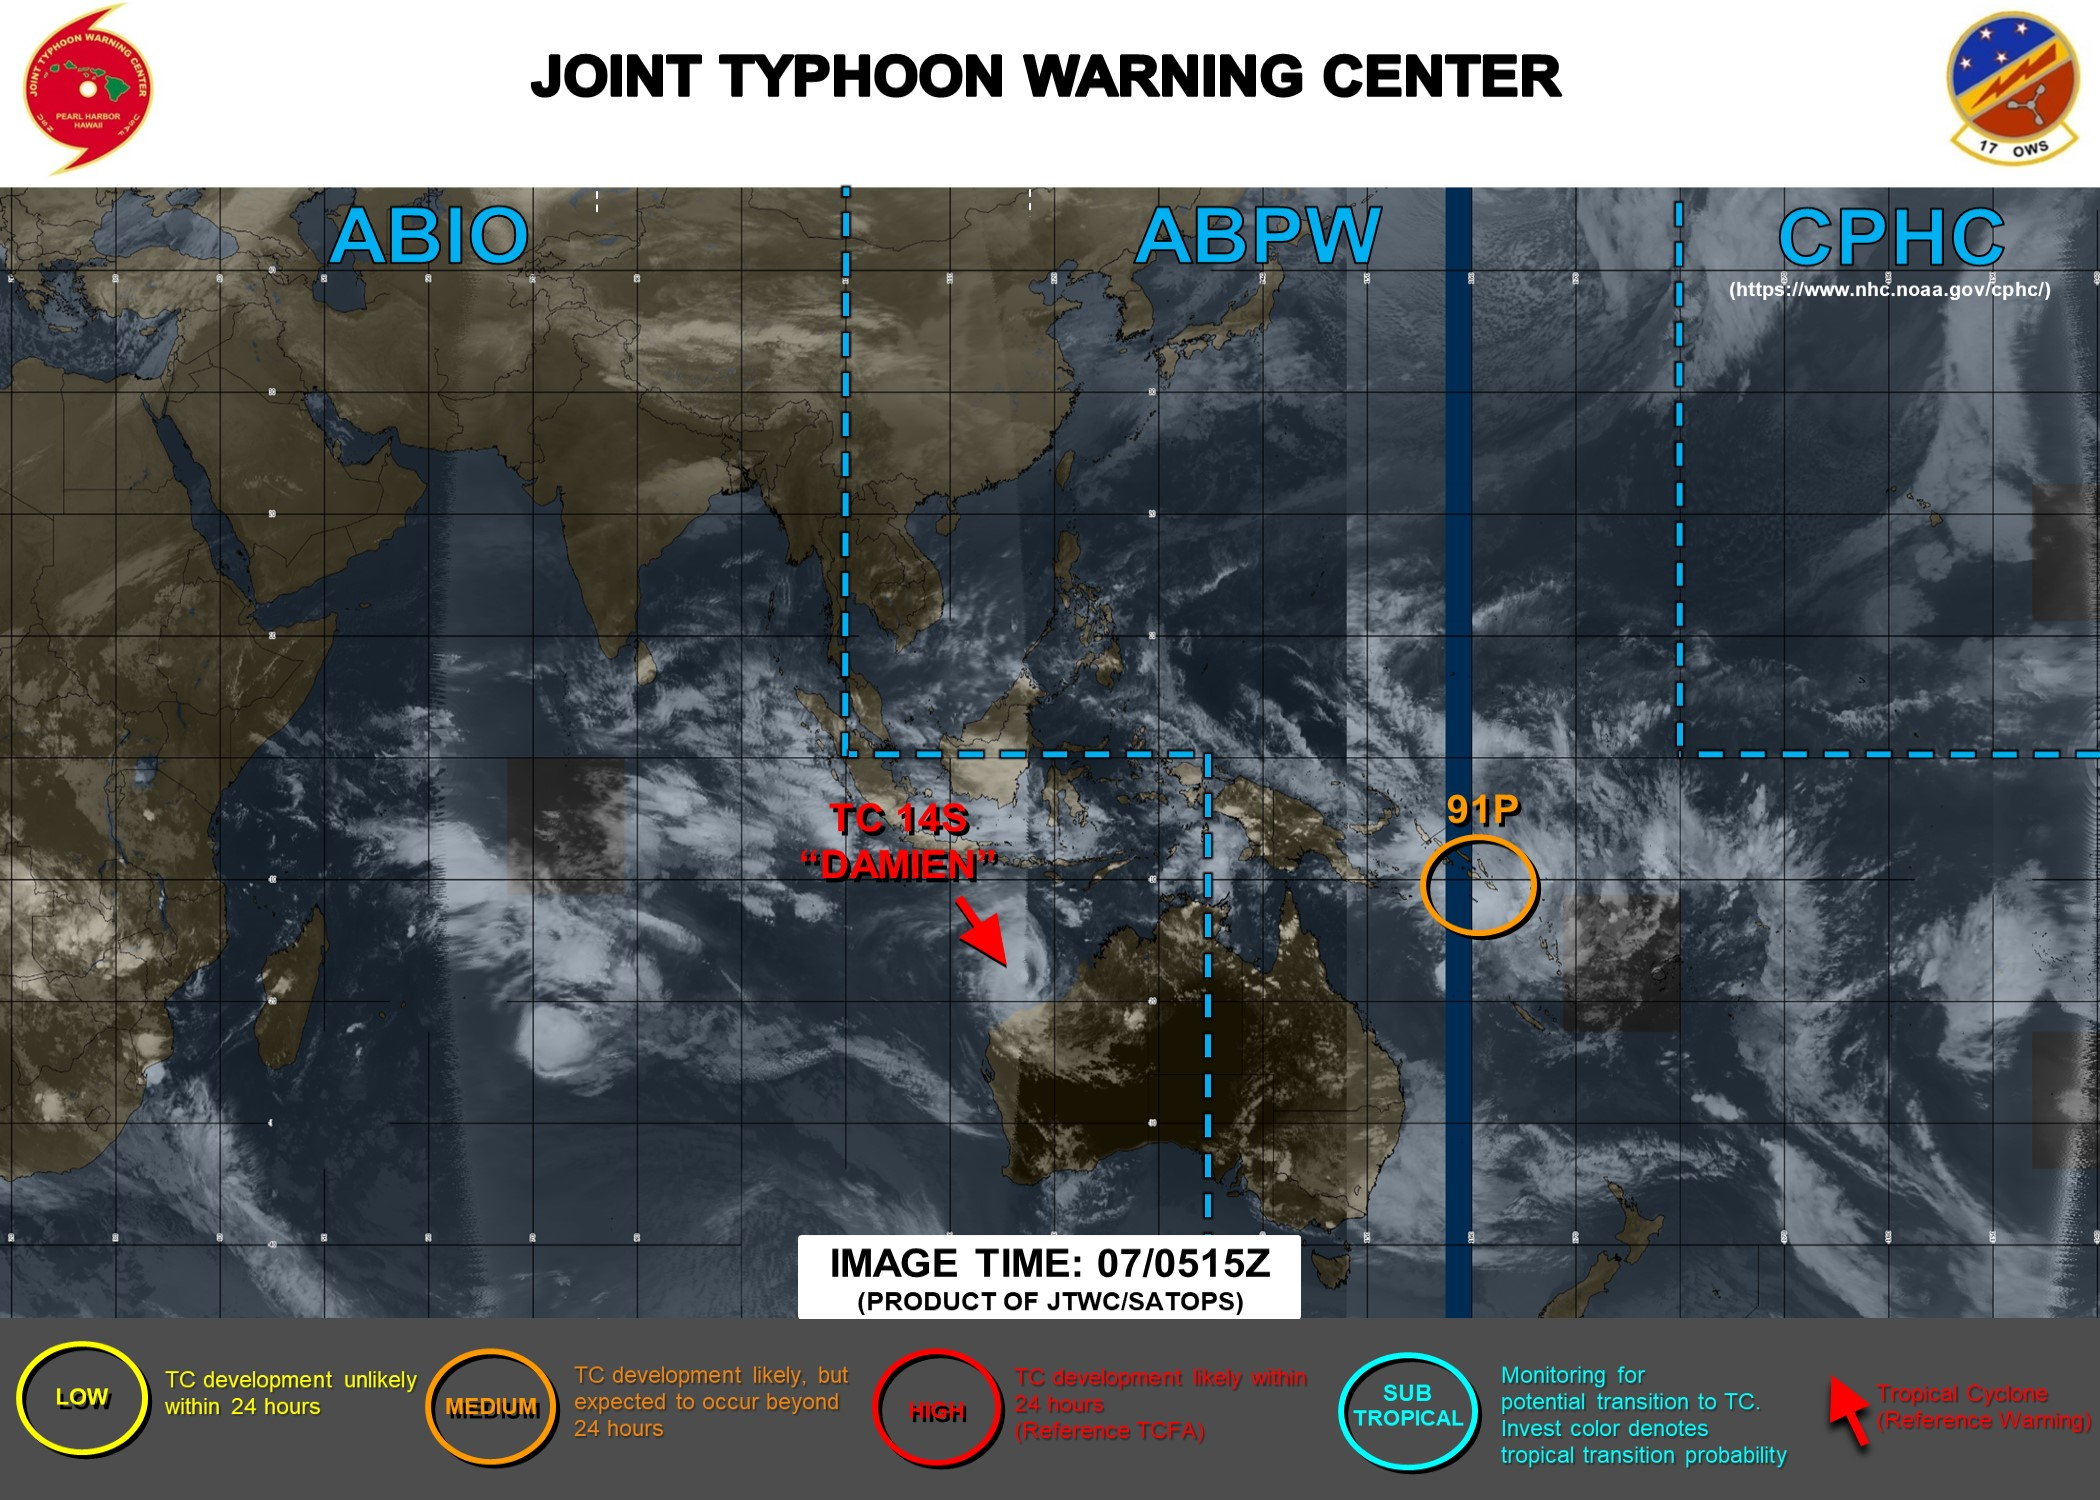 South Pacific: Invest 91P now Medium, expected to intensify significantly next 4 days